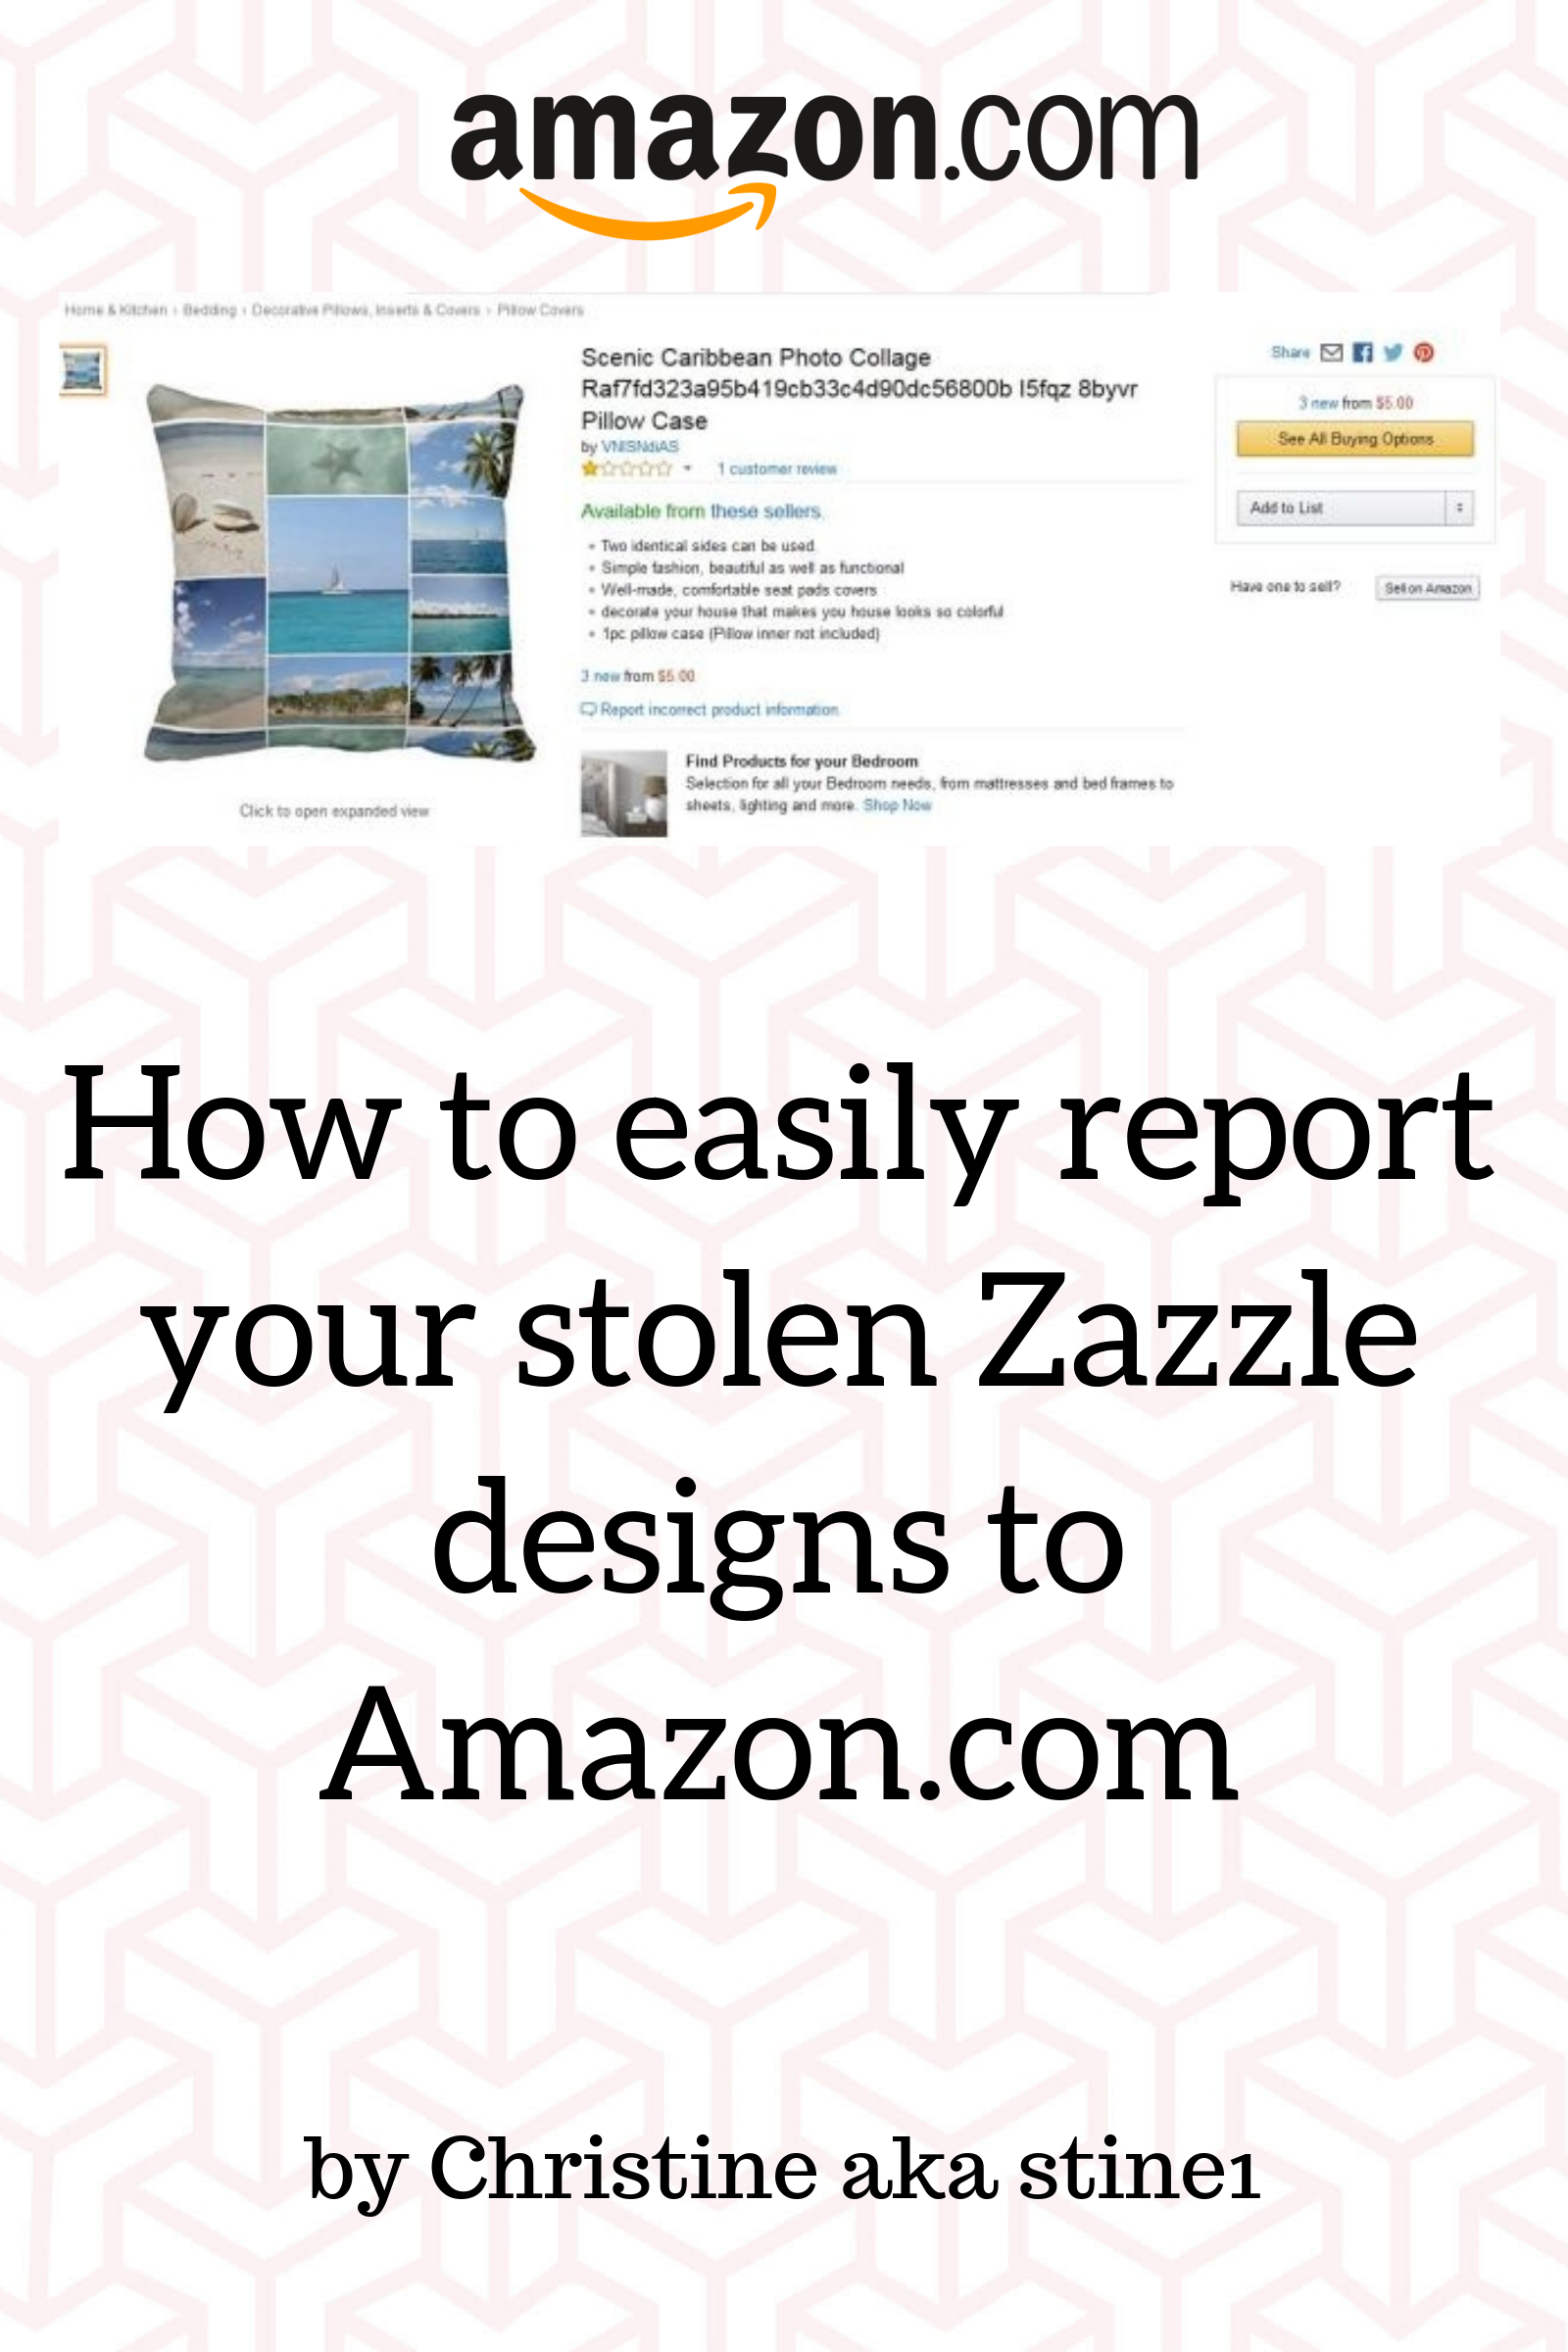 Zizzling Zazzle Christine Aka Stine1 Designing Print On Demand Computer Geek Circuit Board Green Magnetic Picture Frame Ebook How To Easily Report Your Stolen Designs Amazoncom By